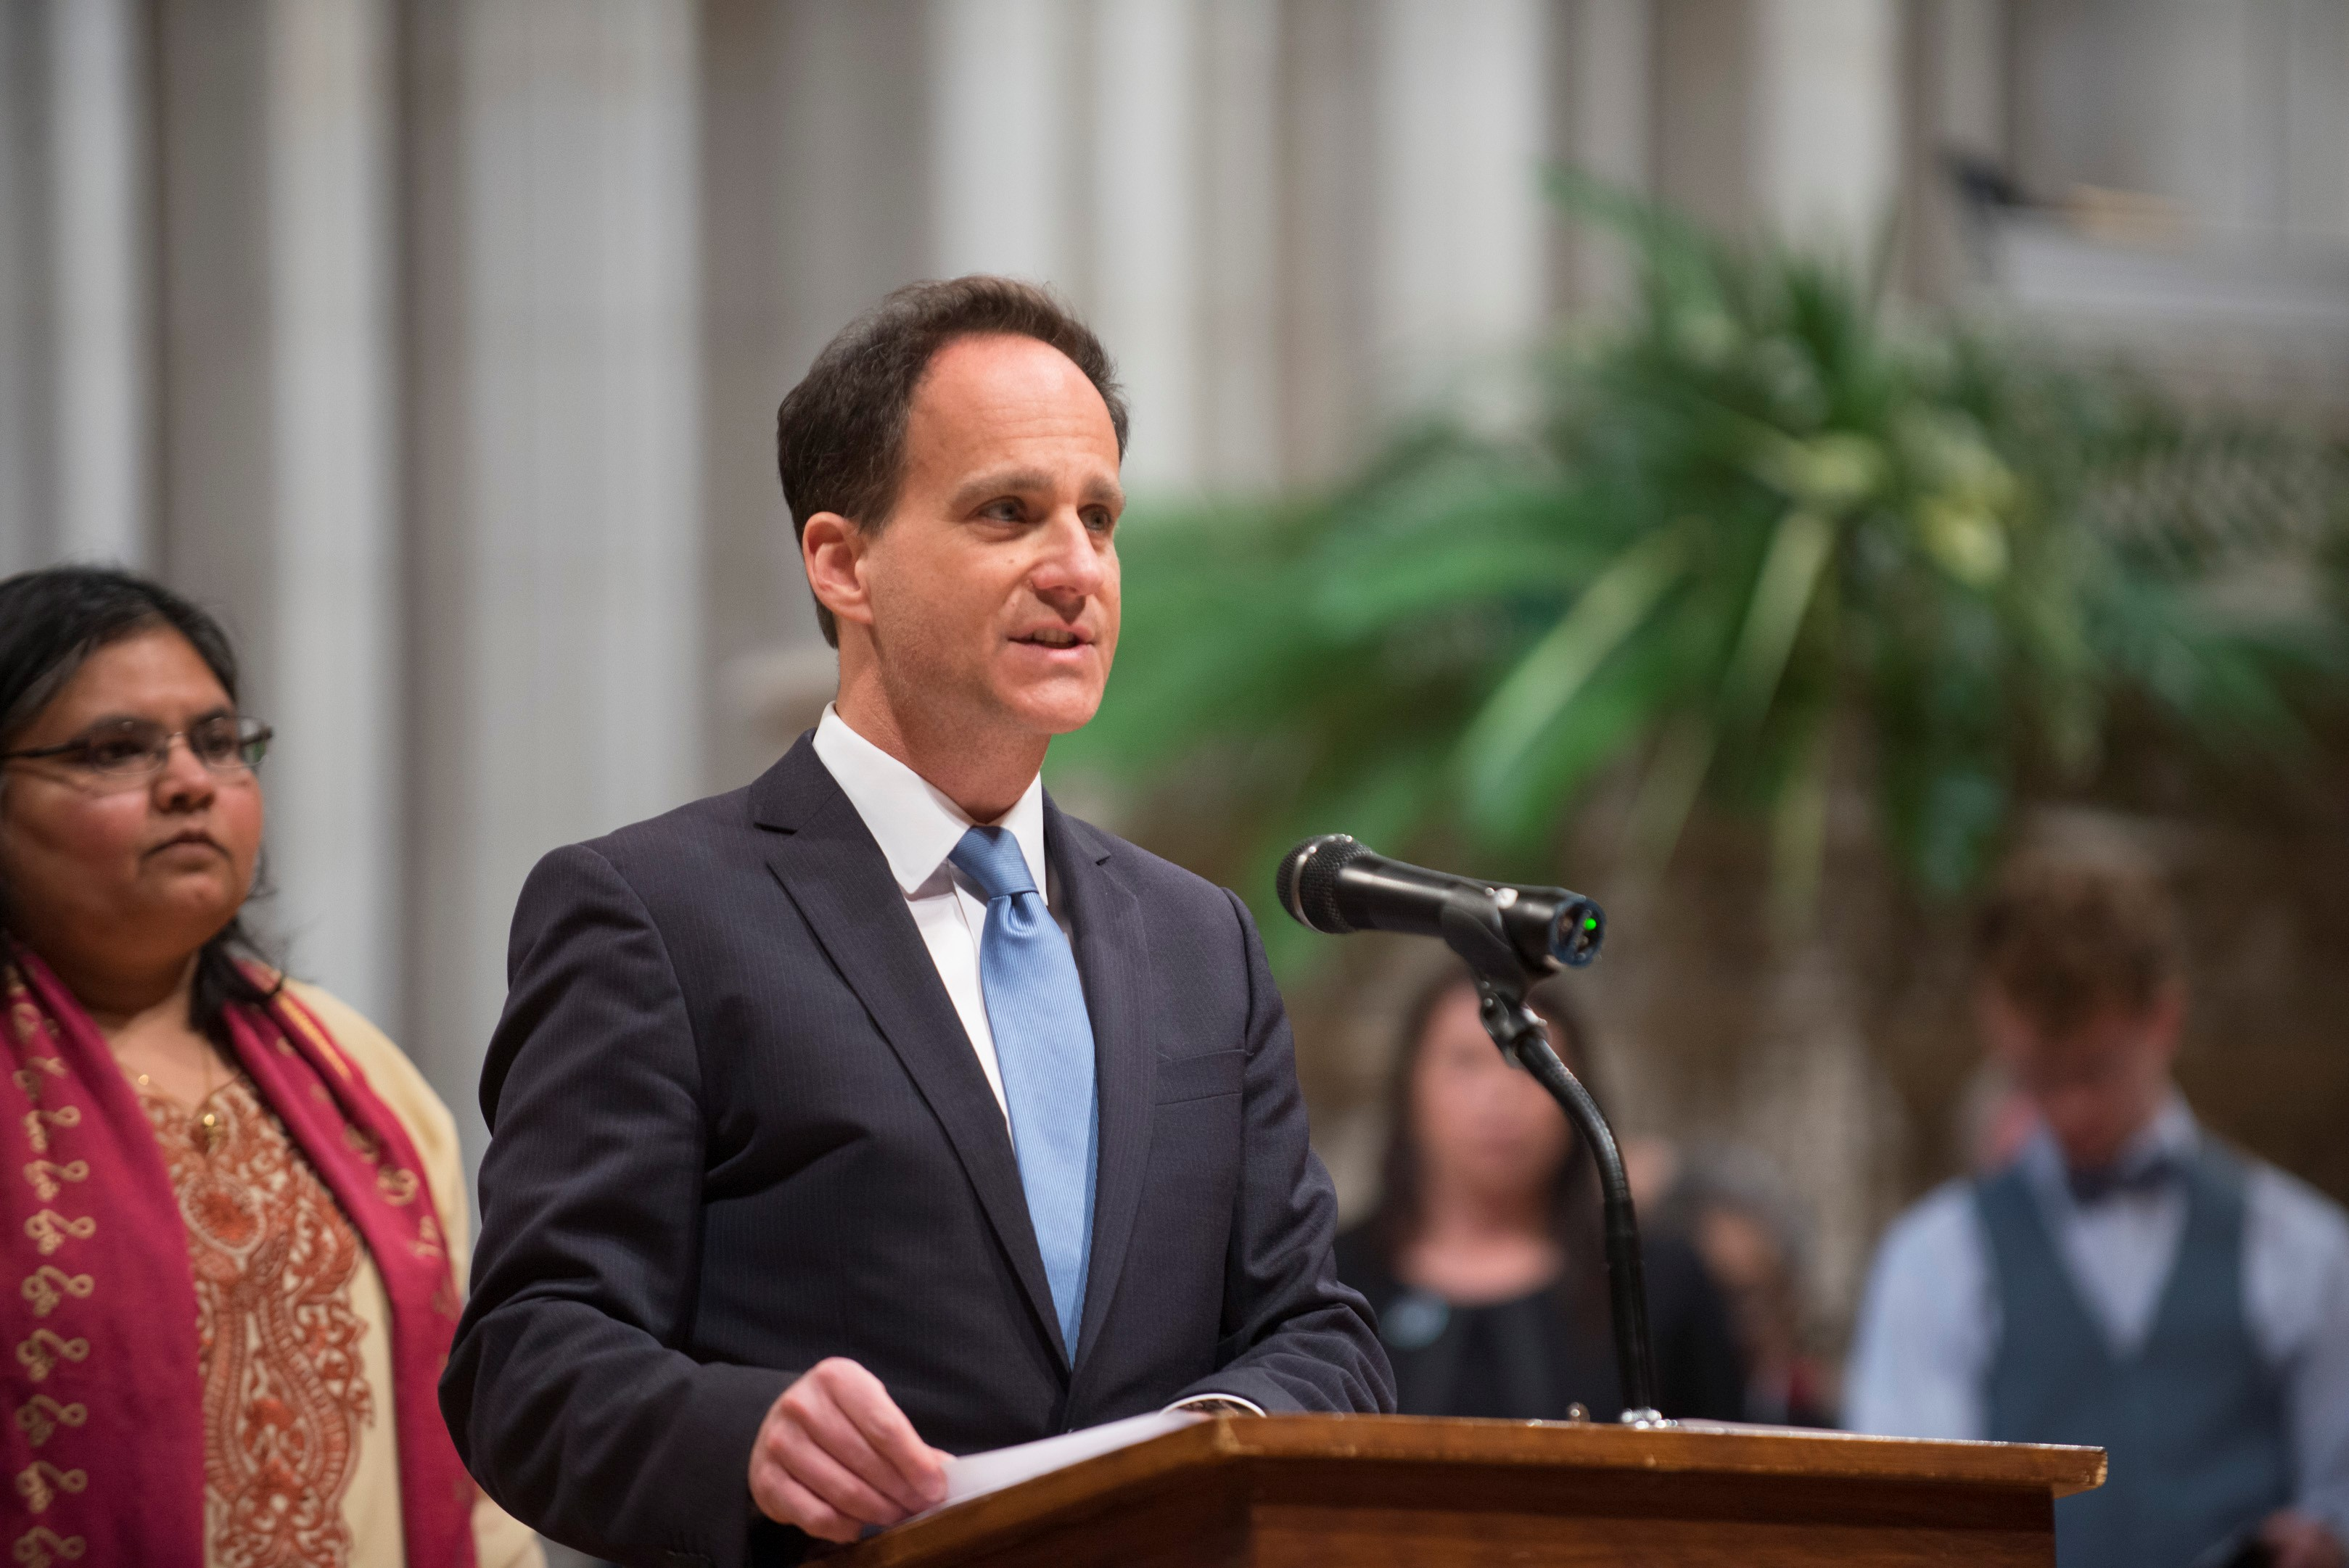 Rabbi Jonah Dov Pesner offers a call to prayer at the Washington National Cathedral's interfaith vigil.